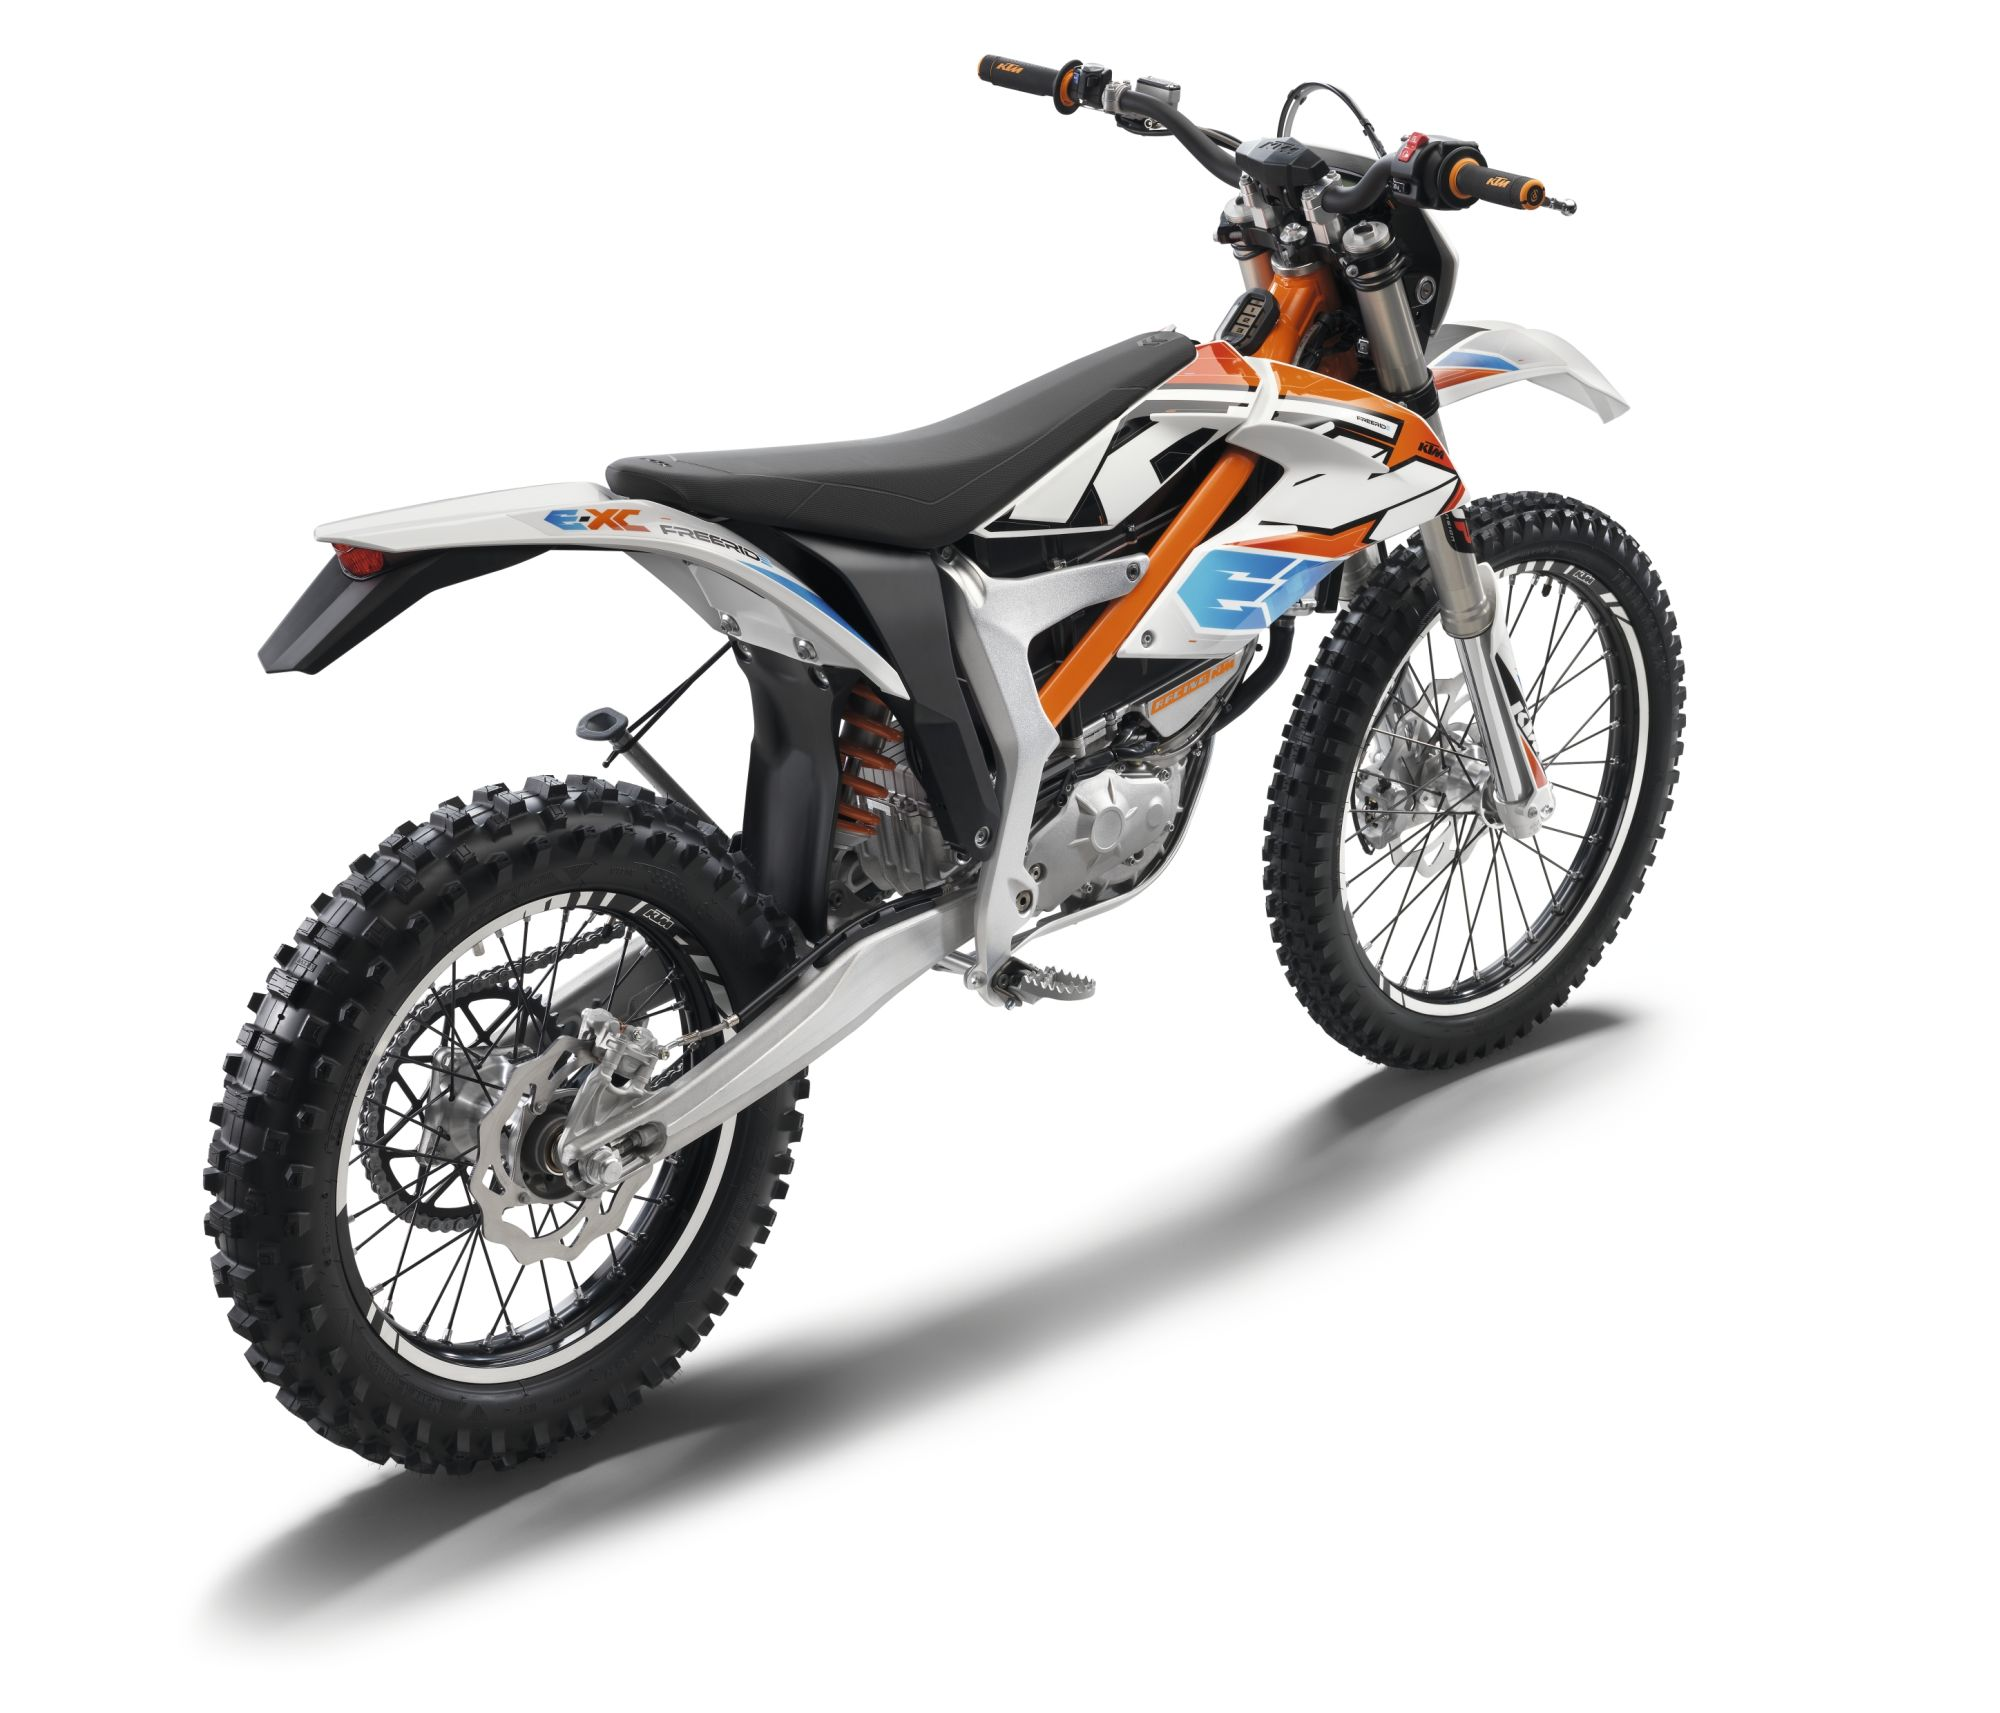 ktm freeride e xc all technical data of the model freeride e xc from ktm. Black Bedroom Furniture Sets. Home Design Ideas